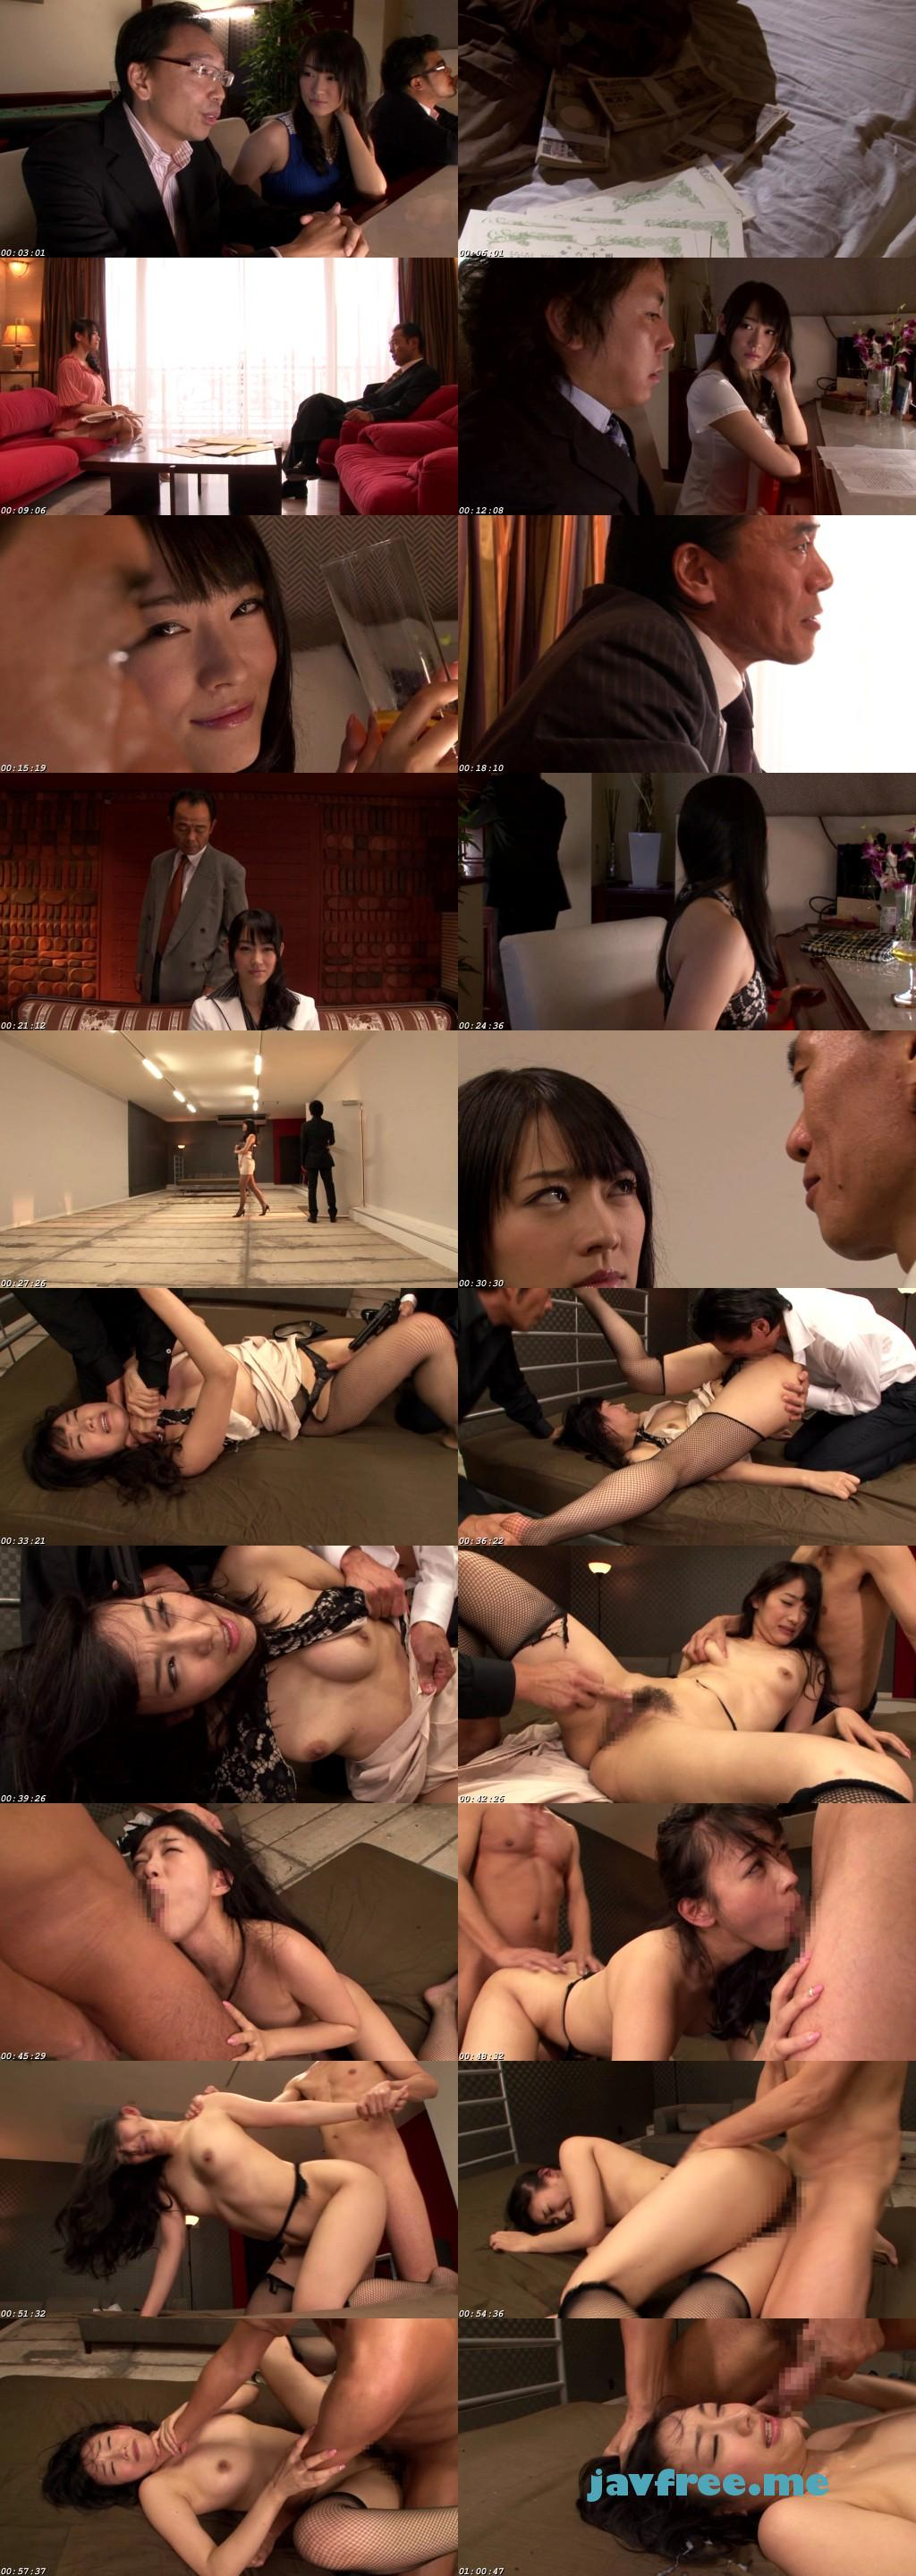 [HD][SSPD-096] 女狐2 西野翔 - image SSPD-096-1 on https://javfree.me